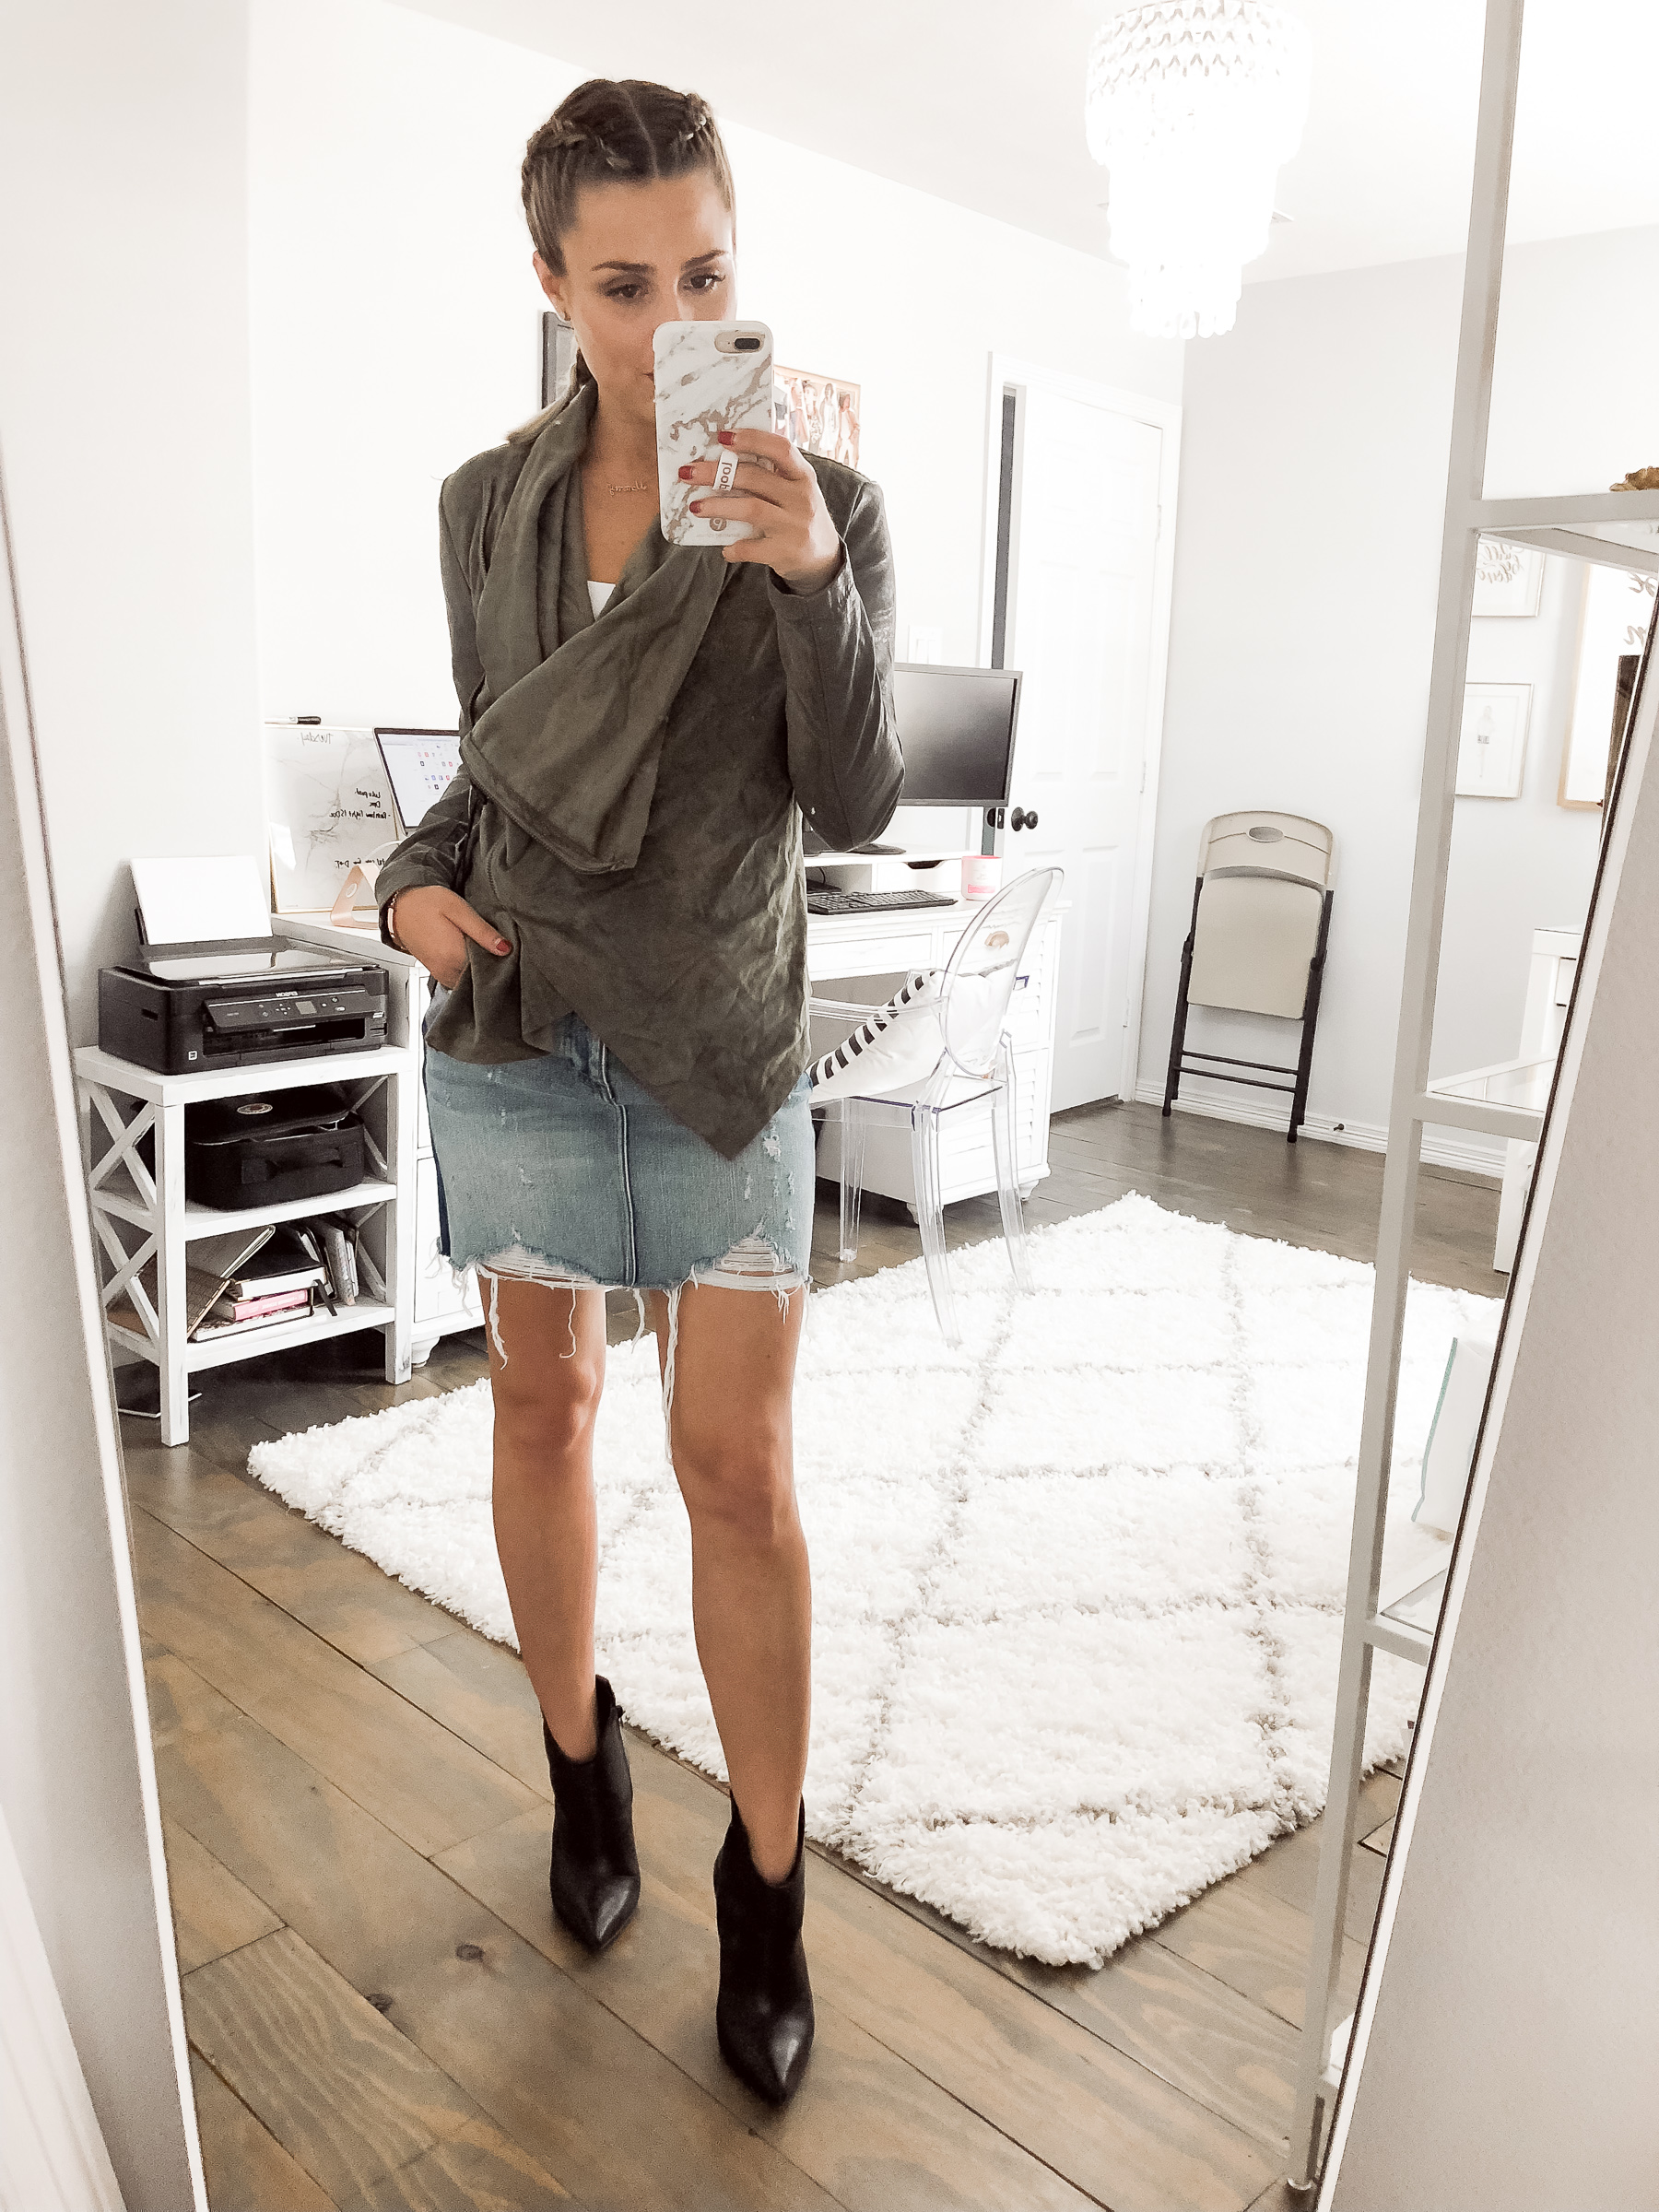 Houston fashion blogger Uptown with Elly Brown wears a denim skirt for a fall outfit